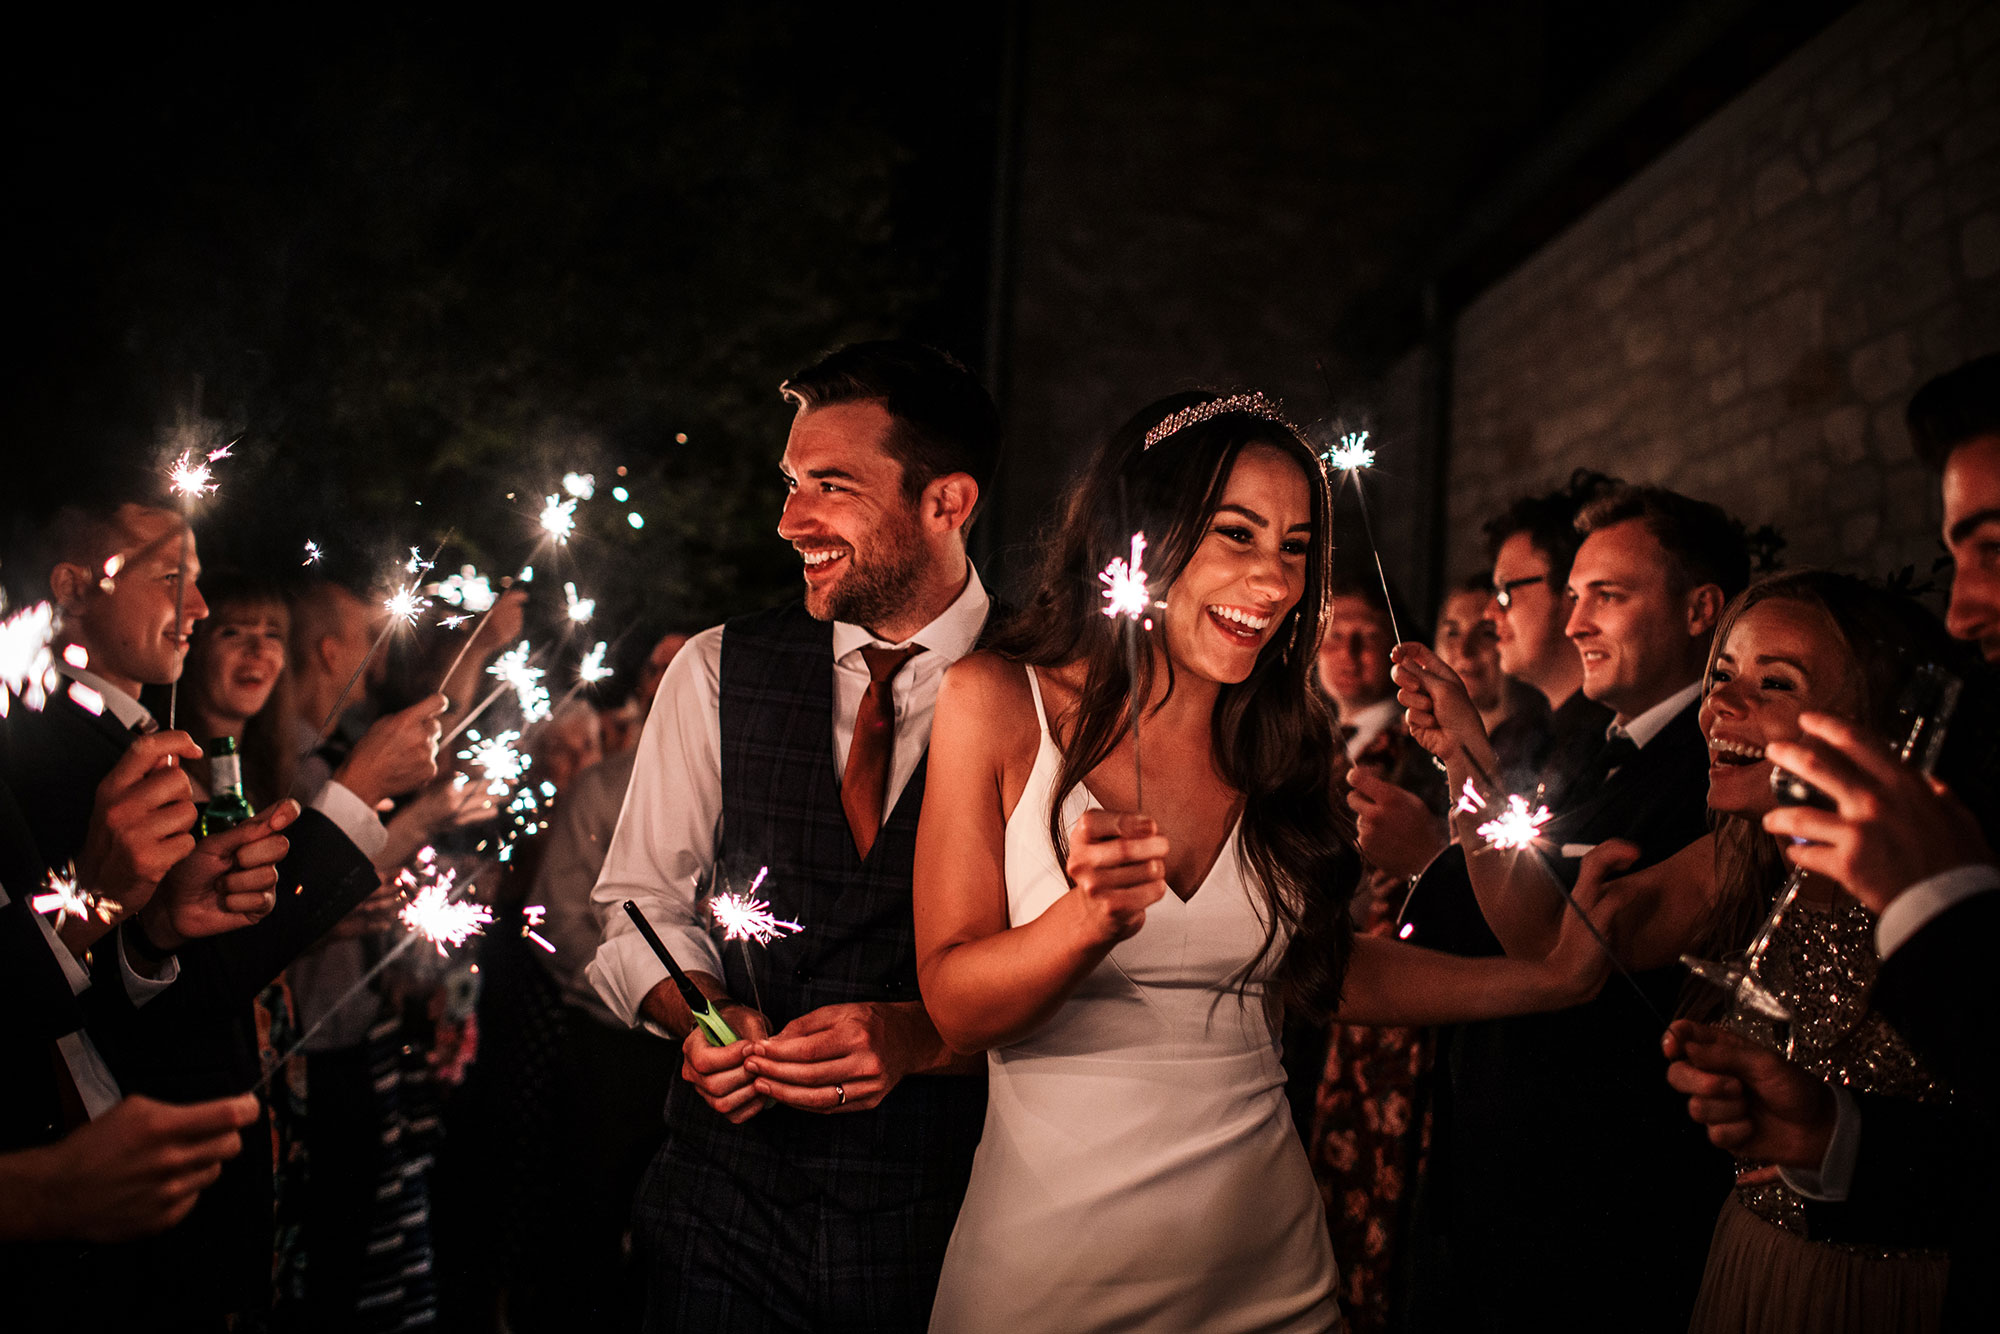 Bride and groom walking holding sparklers late at night in bath